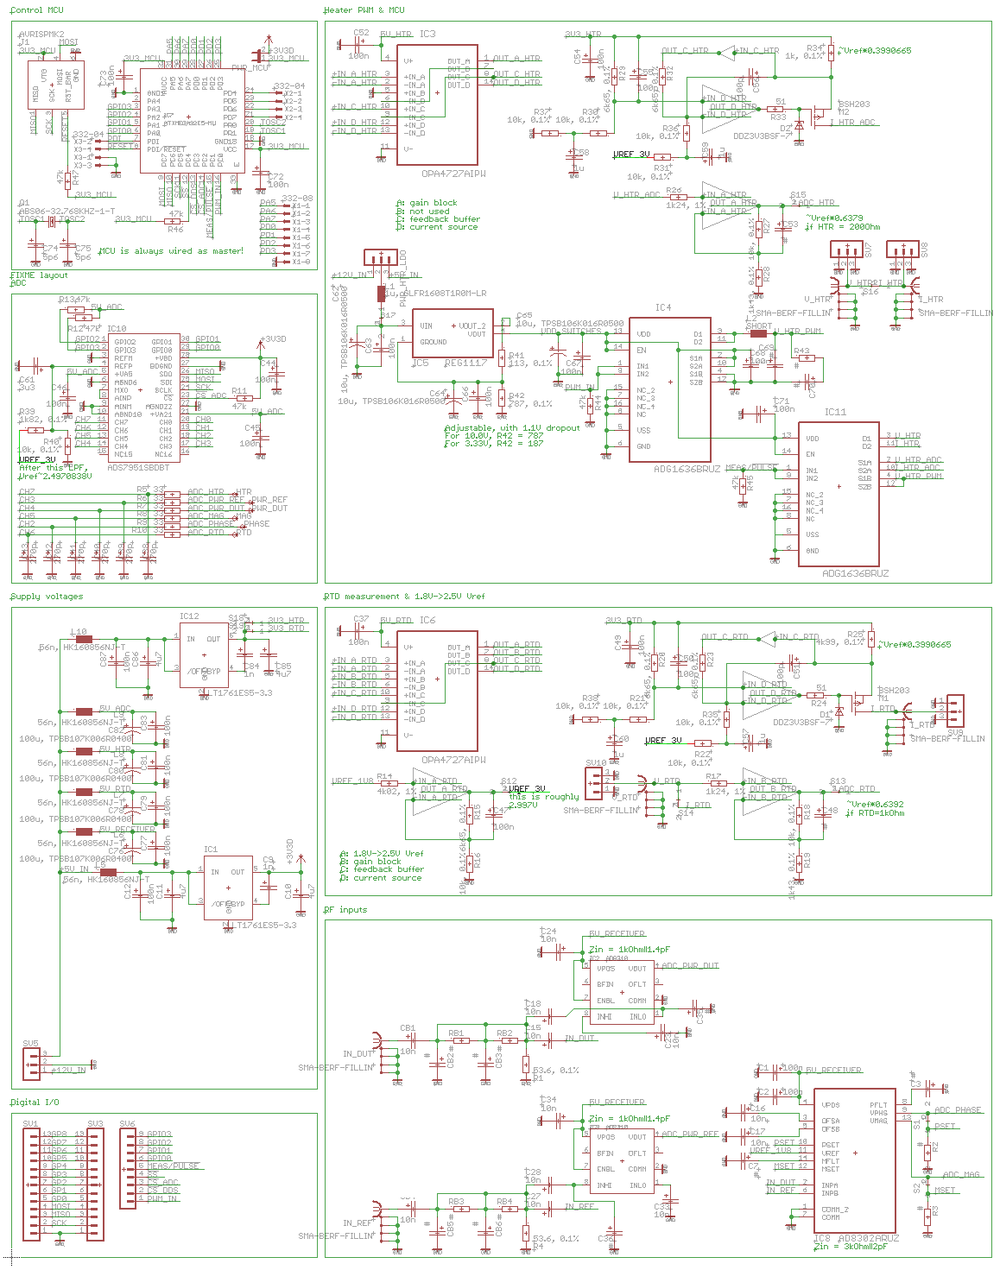 RF receiver board - schematic